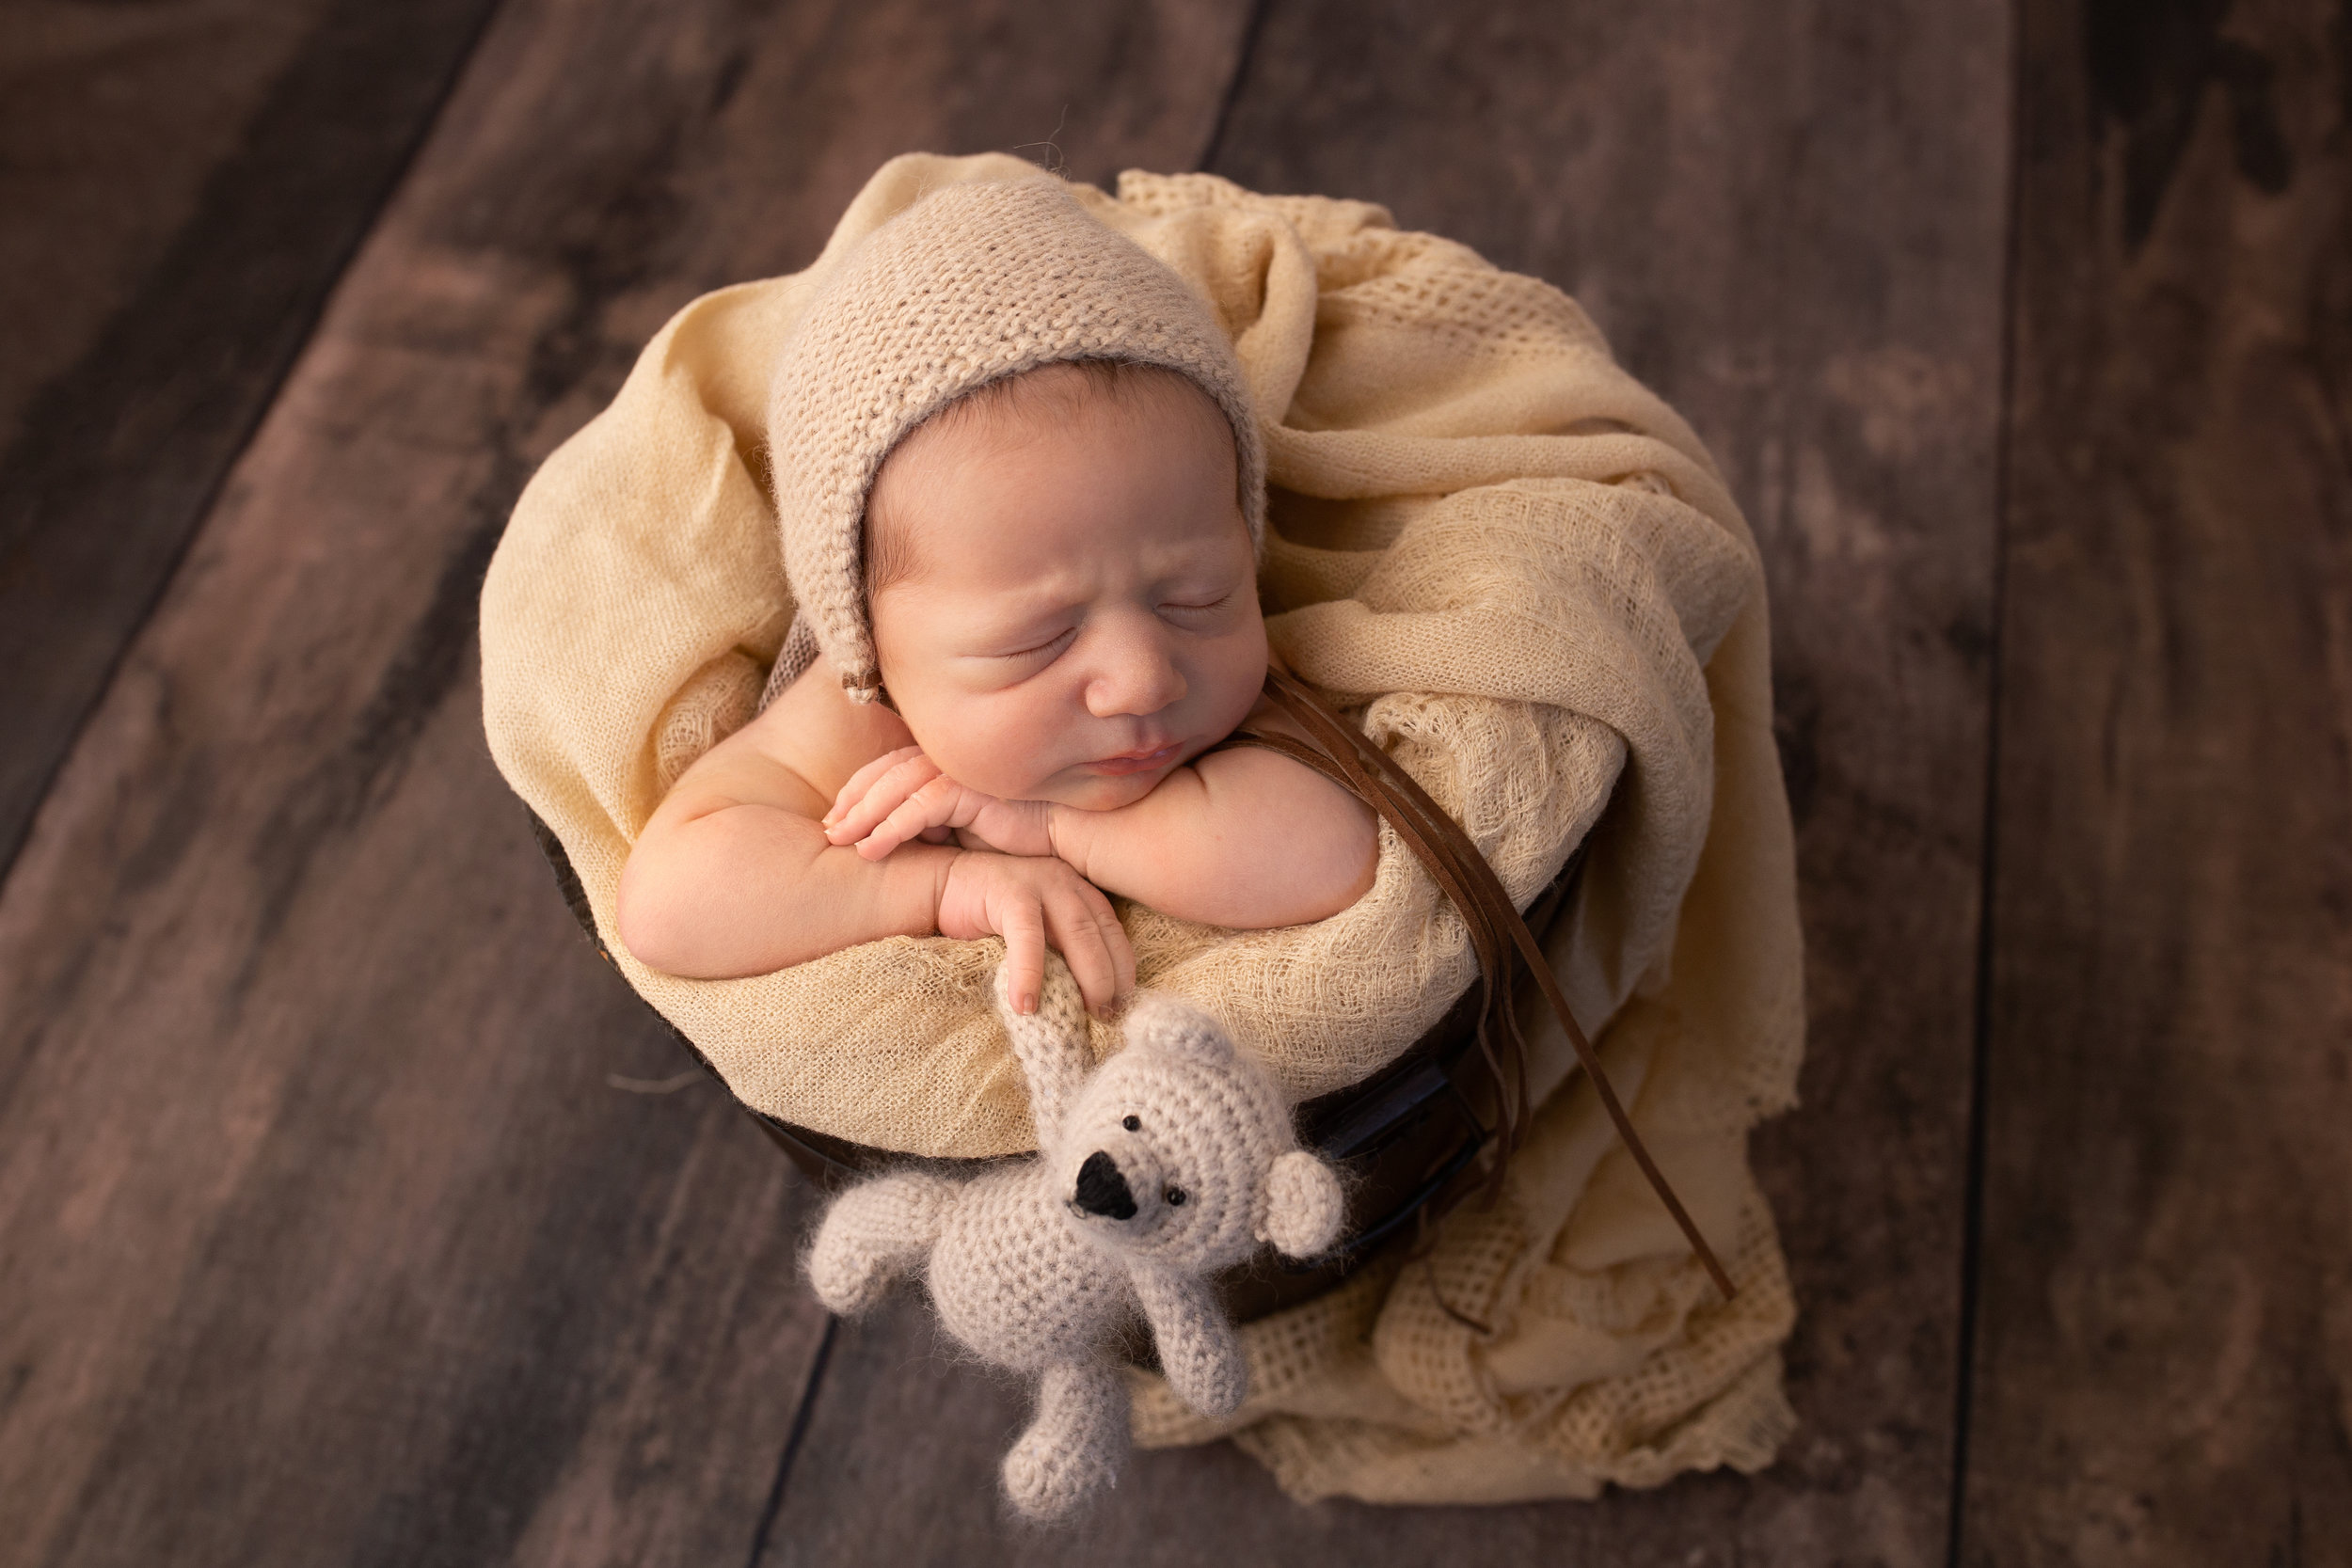 """Kind Words - """"Kristen is SO talented! She was great with my baby girl. She definitely has a magic touch when it comes to soothing babies. Her studio has lots of adorable props and the photos turned out beautifully! You can't even find better newborn photos on Pinterest. Haha. Thank you again, Kristen!"""" - Nicole C"""